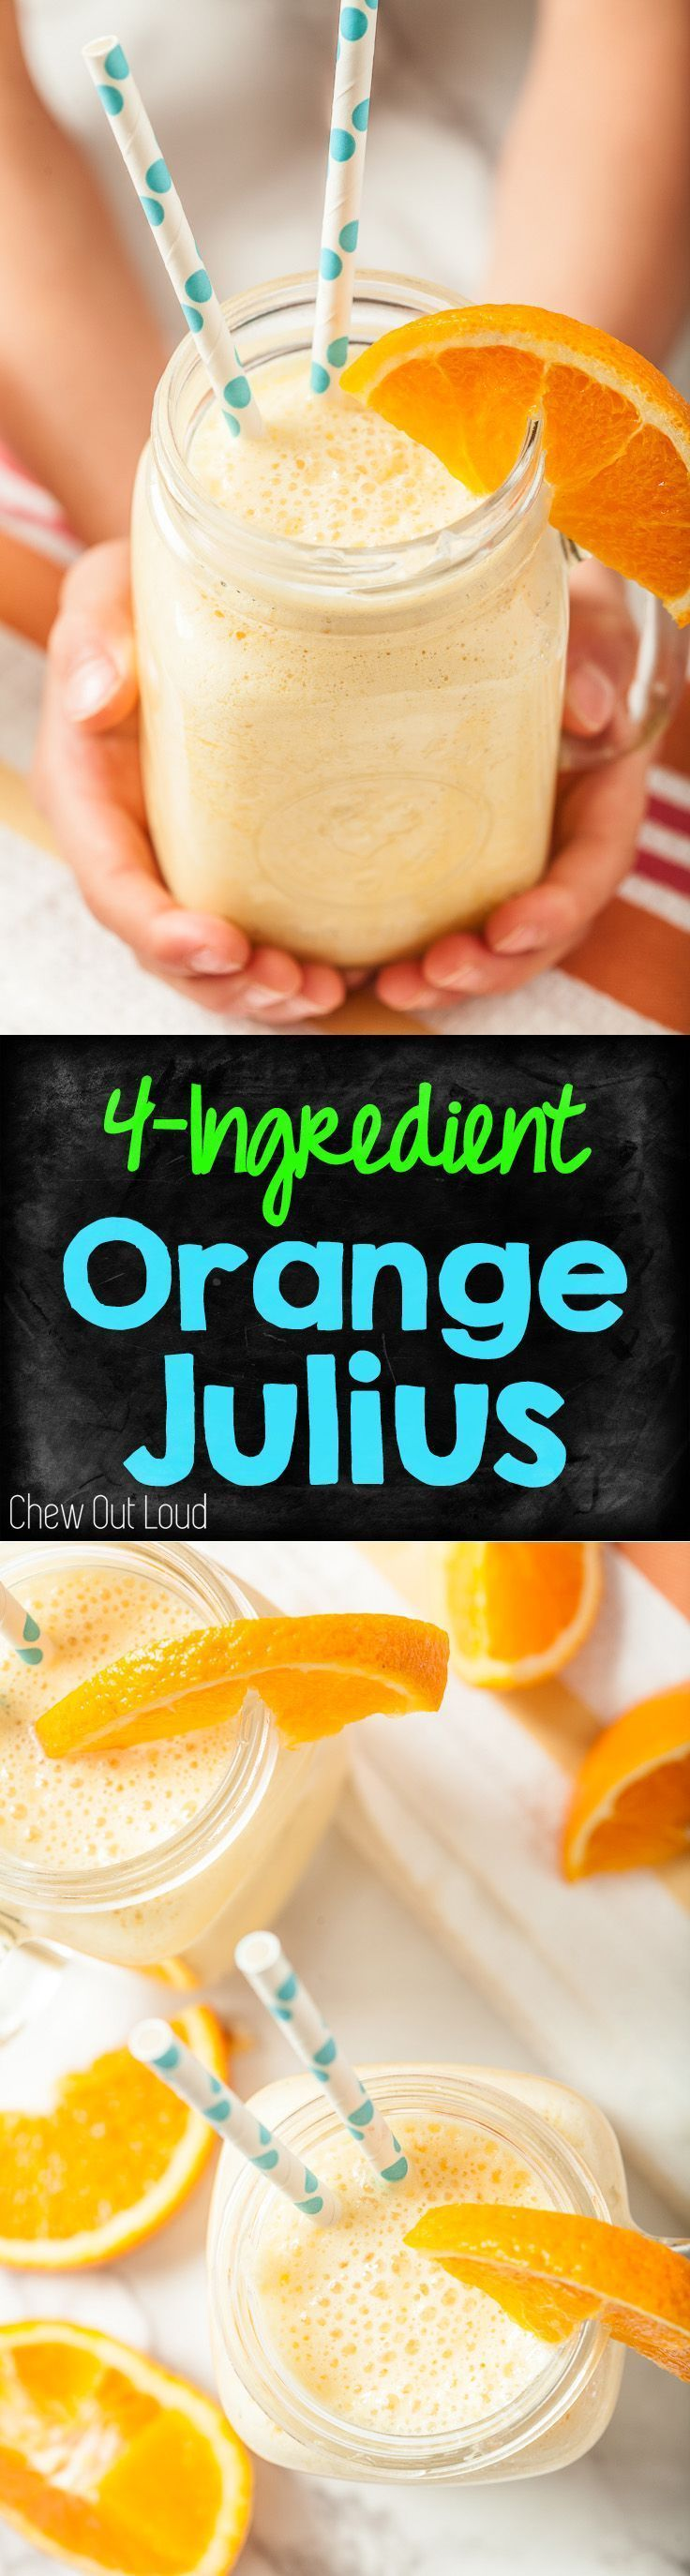 5 minutes is all you need to make this refreshing Orange Julius! It's healthy, frothy, and just like what you get at the mall, without going to the mall.  #orange #smoothie #julius www.chewoutloud.com